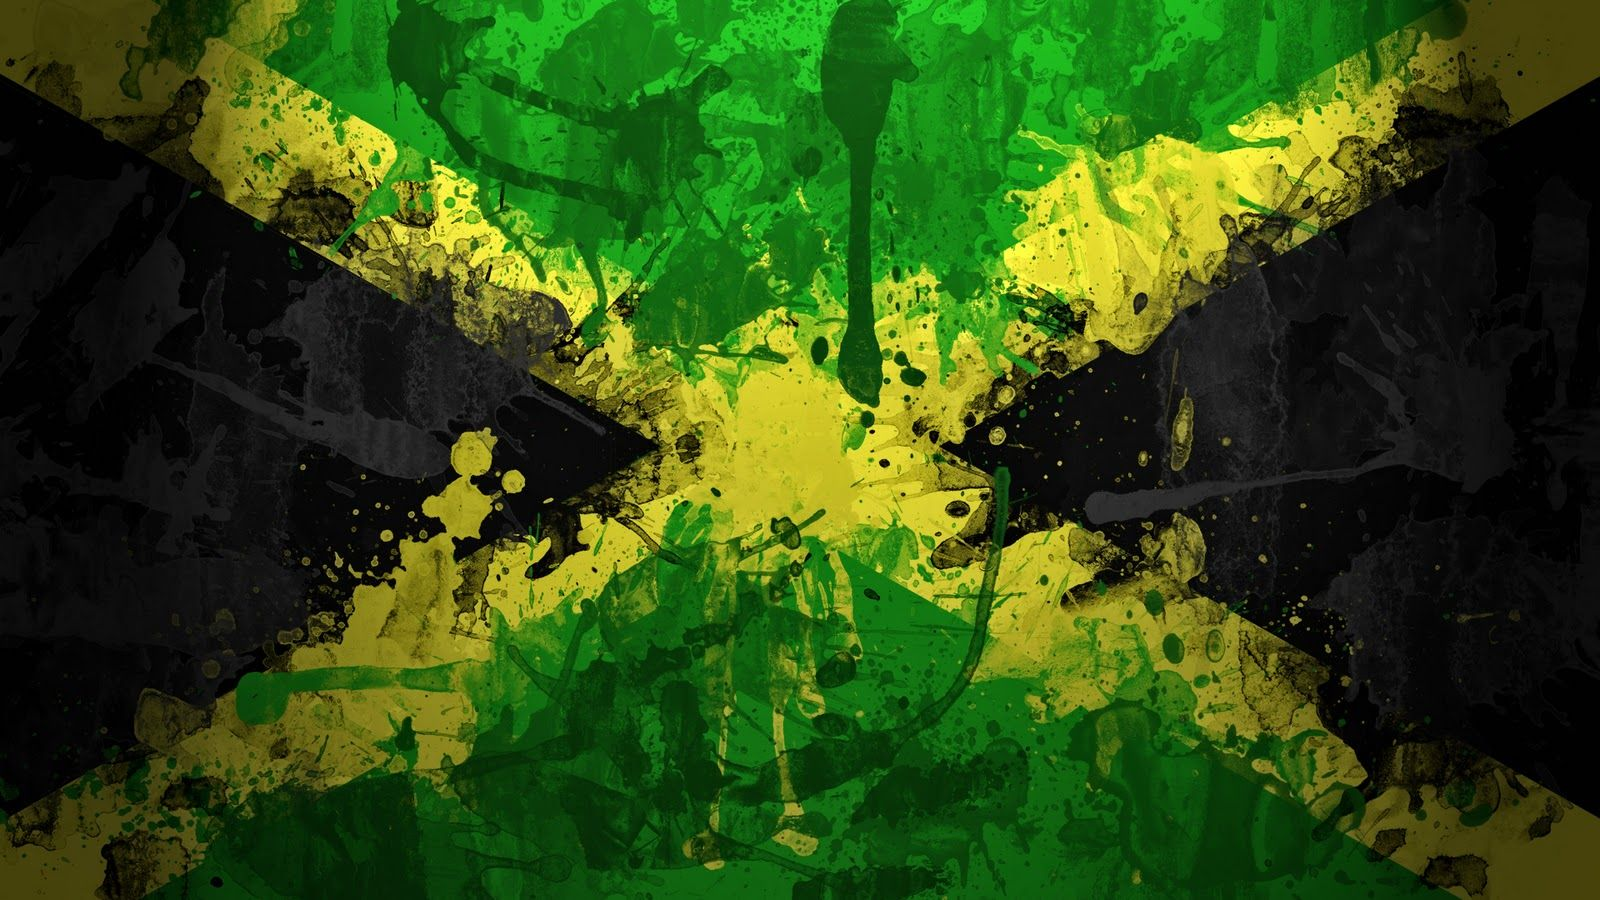 Rasta Flag Live Wallpaper Android Apps On Google Play 1920x1080 Wallpapers 31